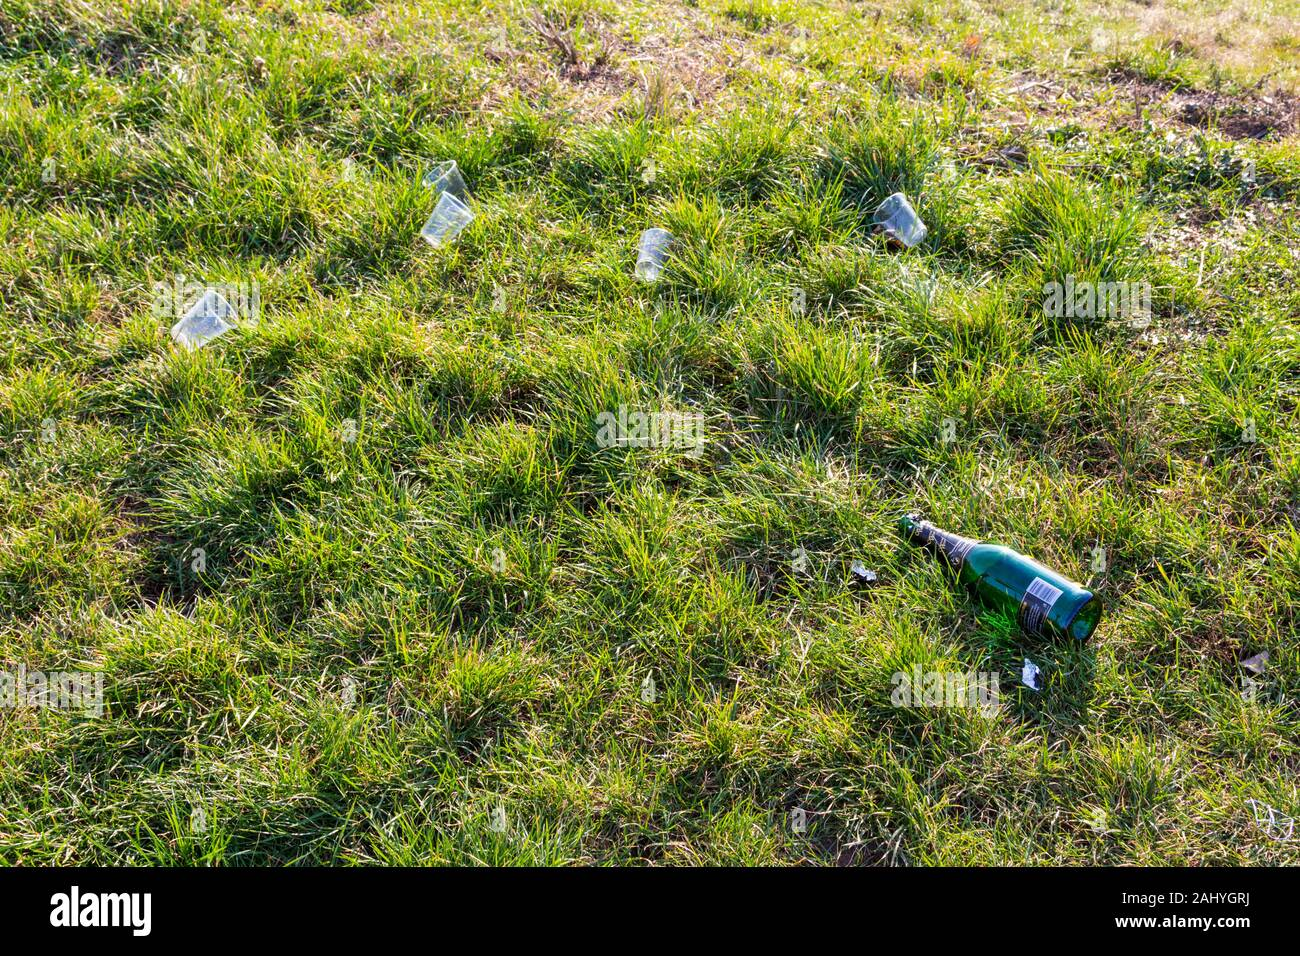 Empty bottle of champagne and plastic disposable single use glasses on grass after new years eve party Stock Photo